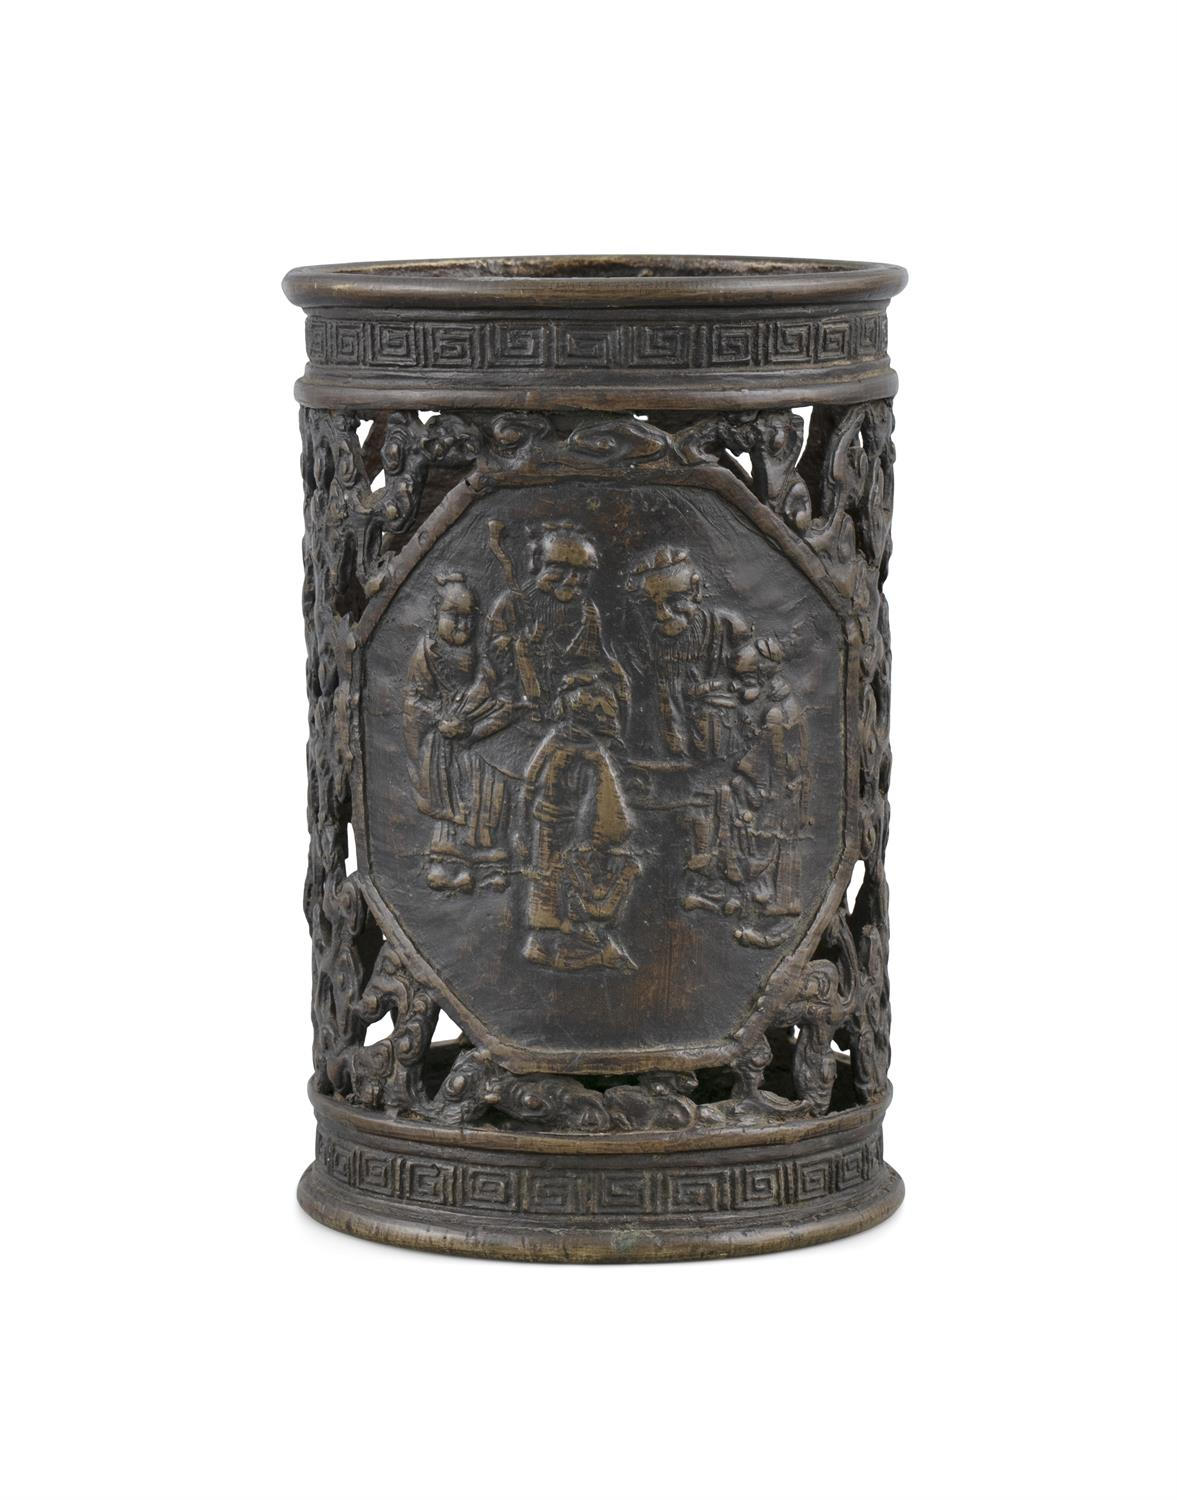 A PARCEL RETICULATED BROWN-PATINA BRONZE 'IMMORTALS' BRUSHPOT China, late Qing Dynasty H: 12,3 - Image 9 of 11